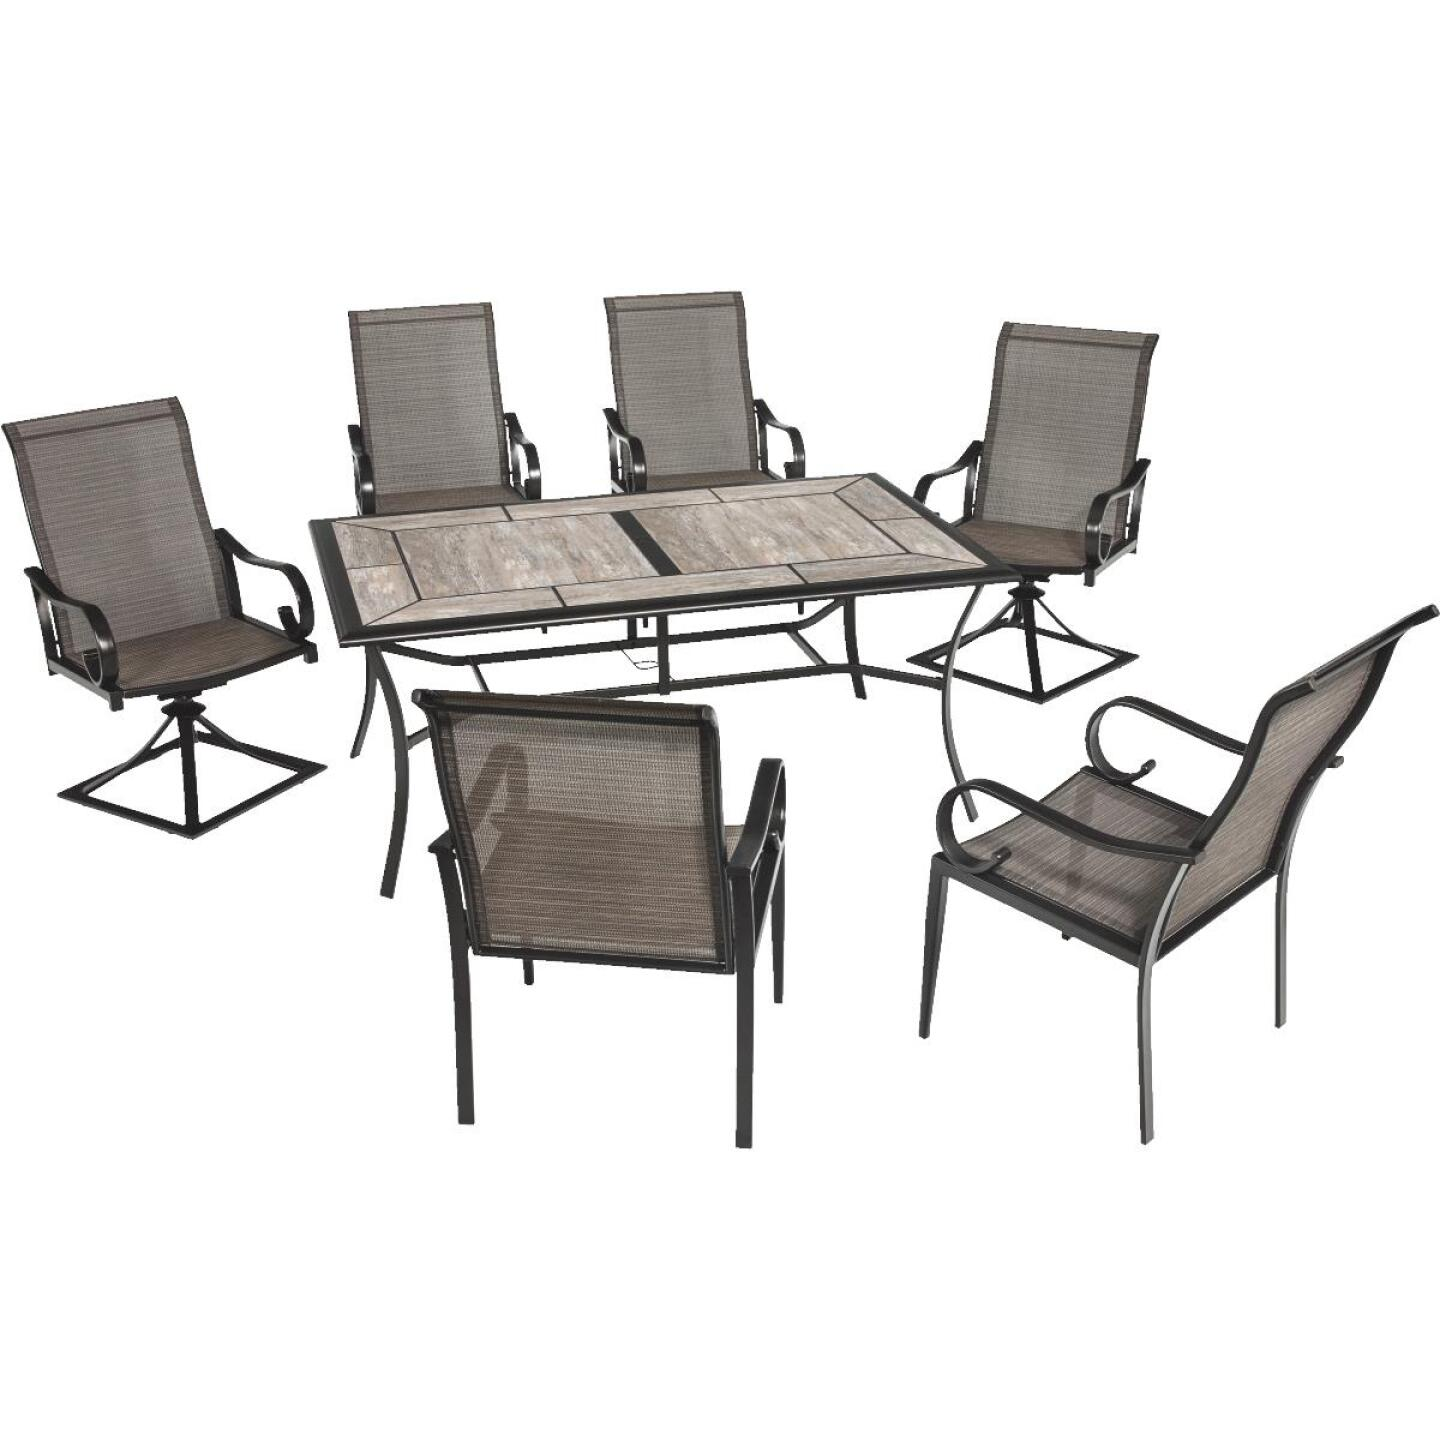 Outdoor Expressions Berkshire 7-Piece Dining Set Image 73